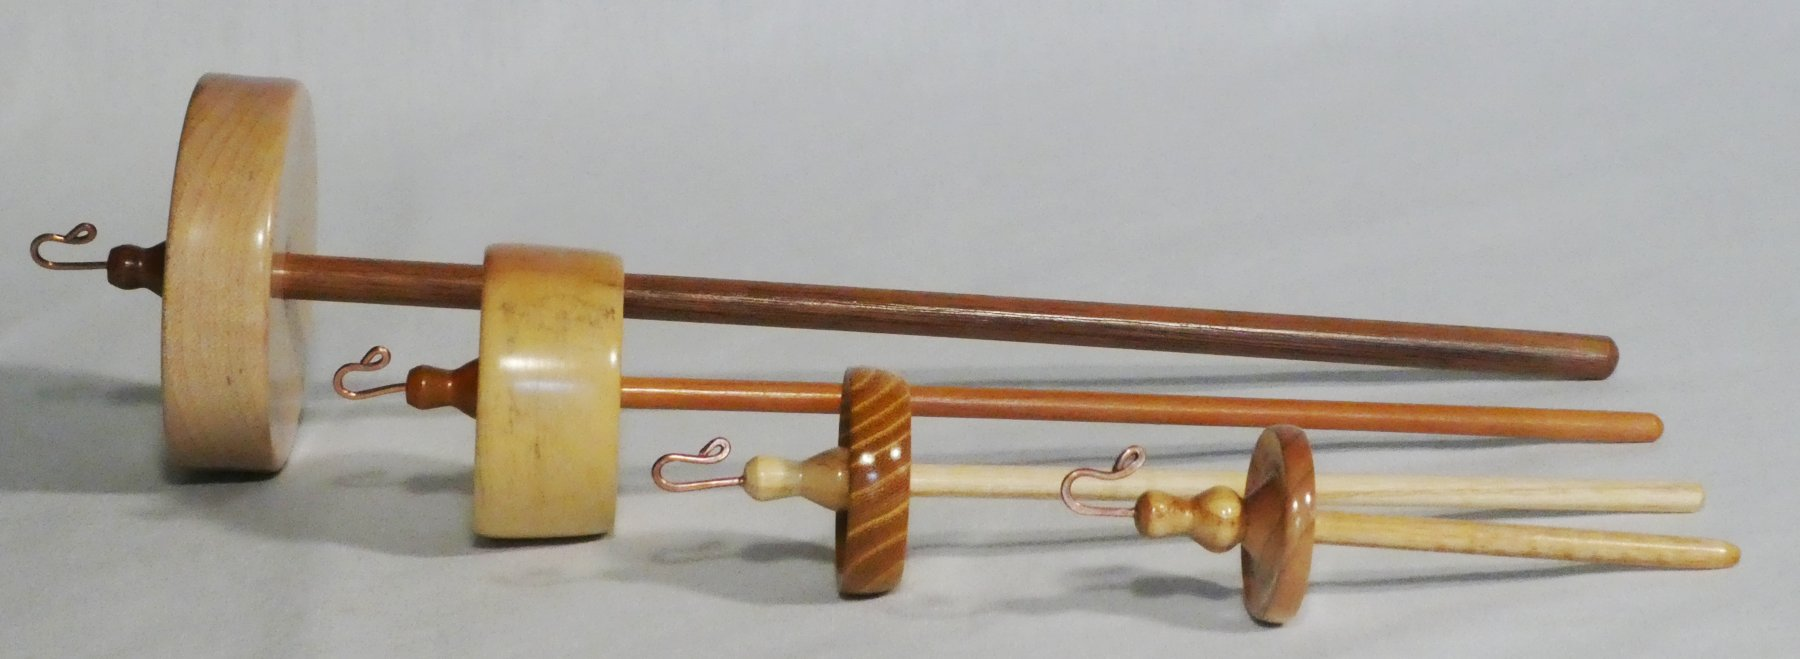 The range of drop or suspended spindle sizes handturned by Cynthia D. Haney